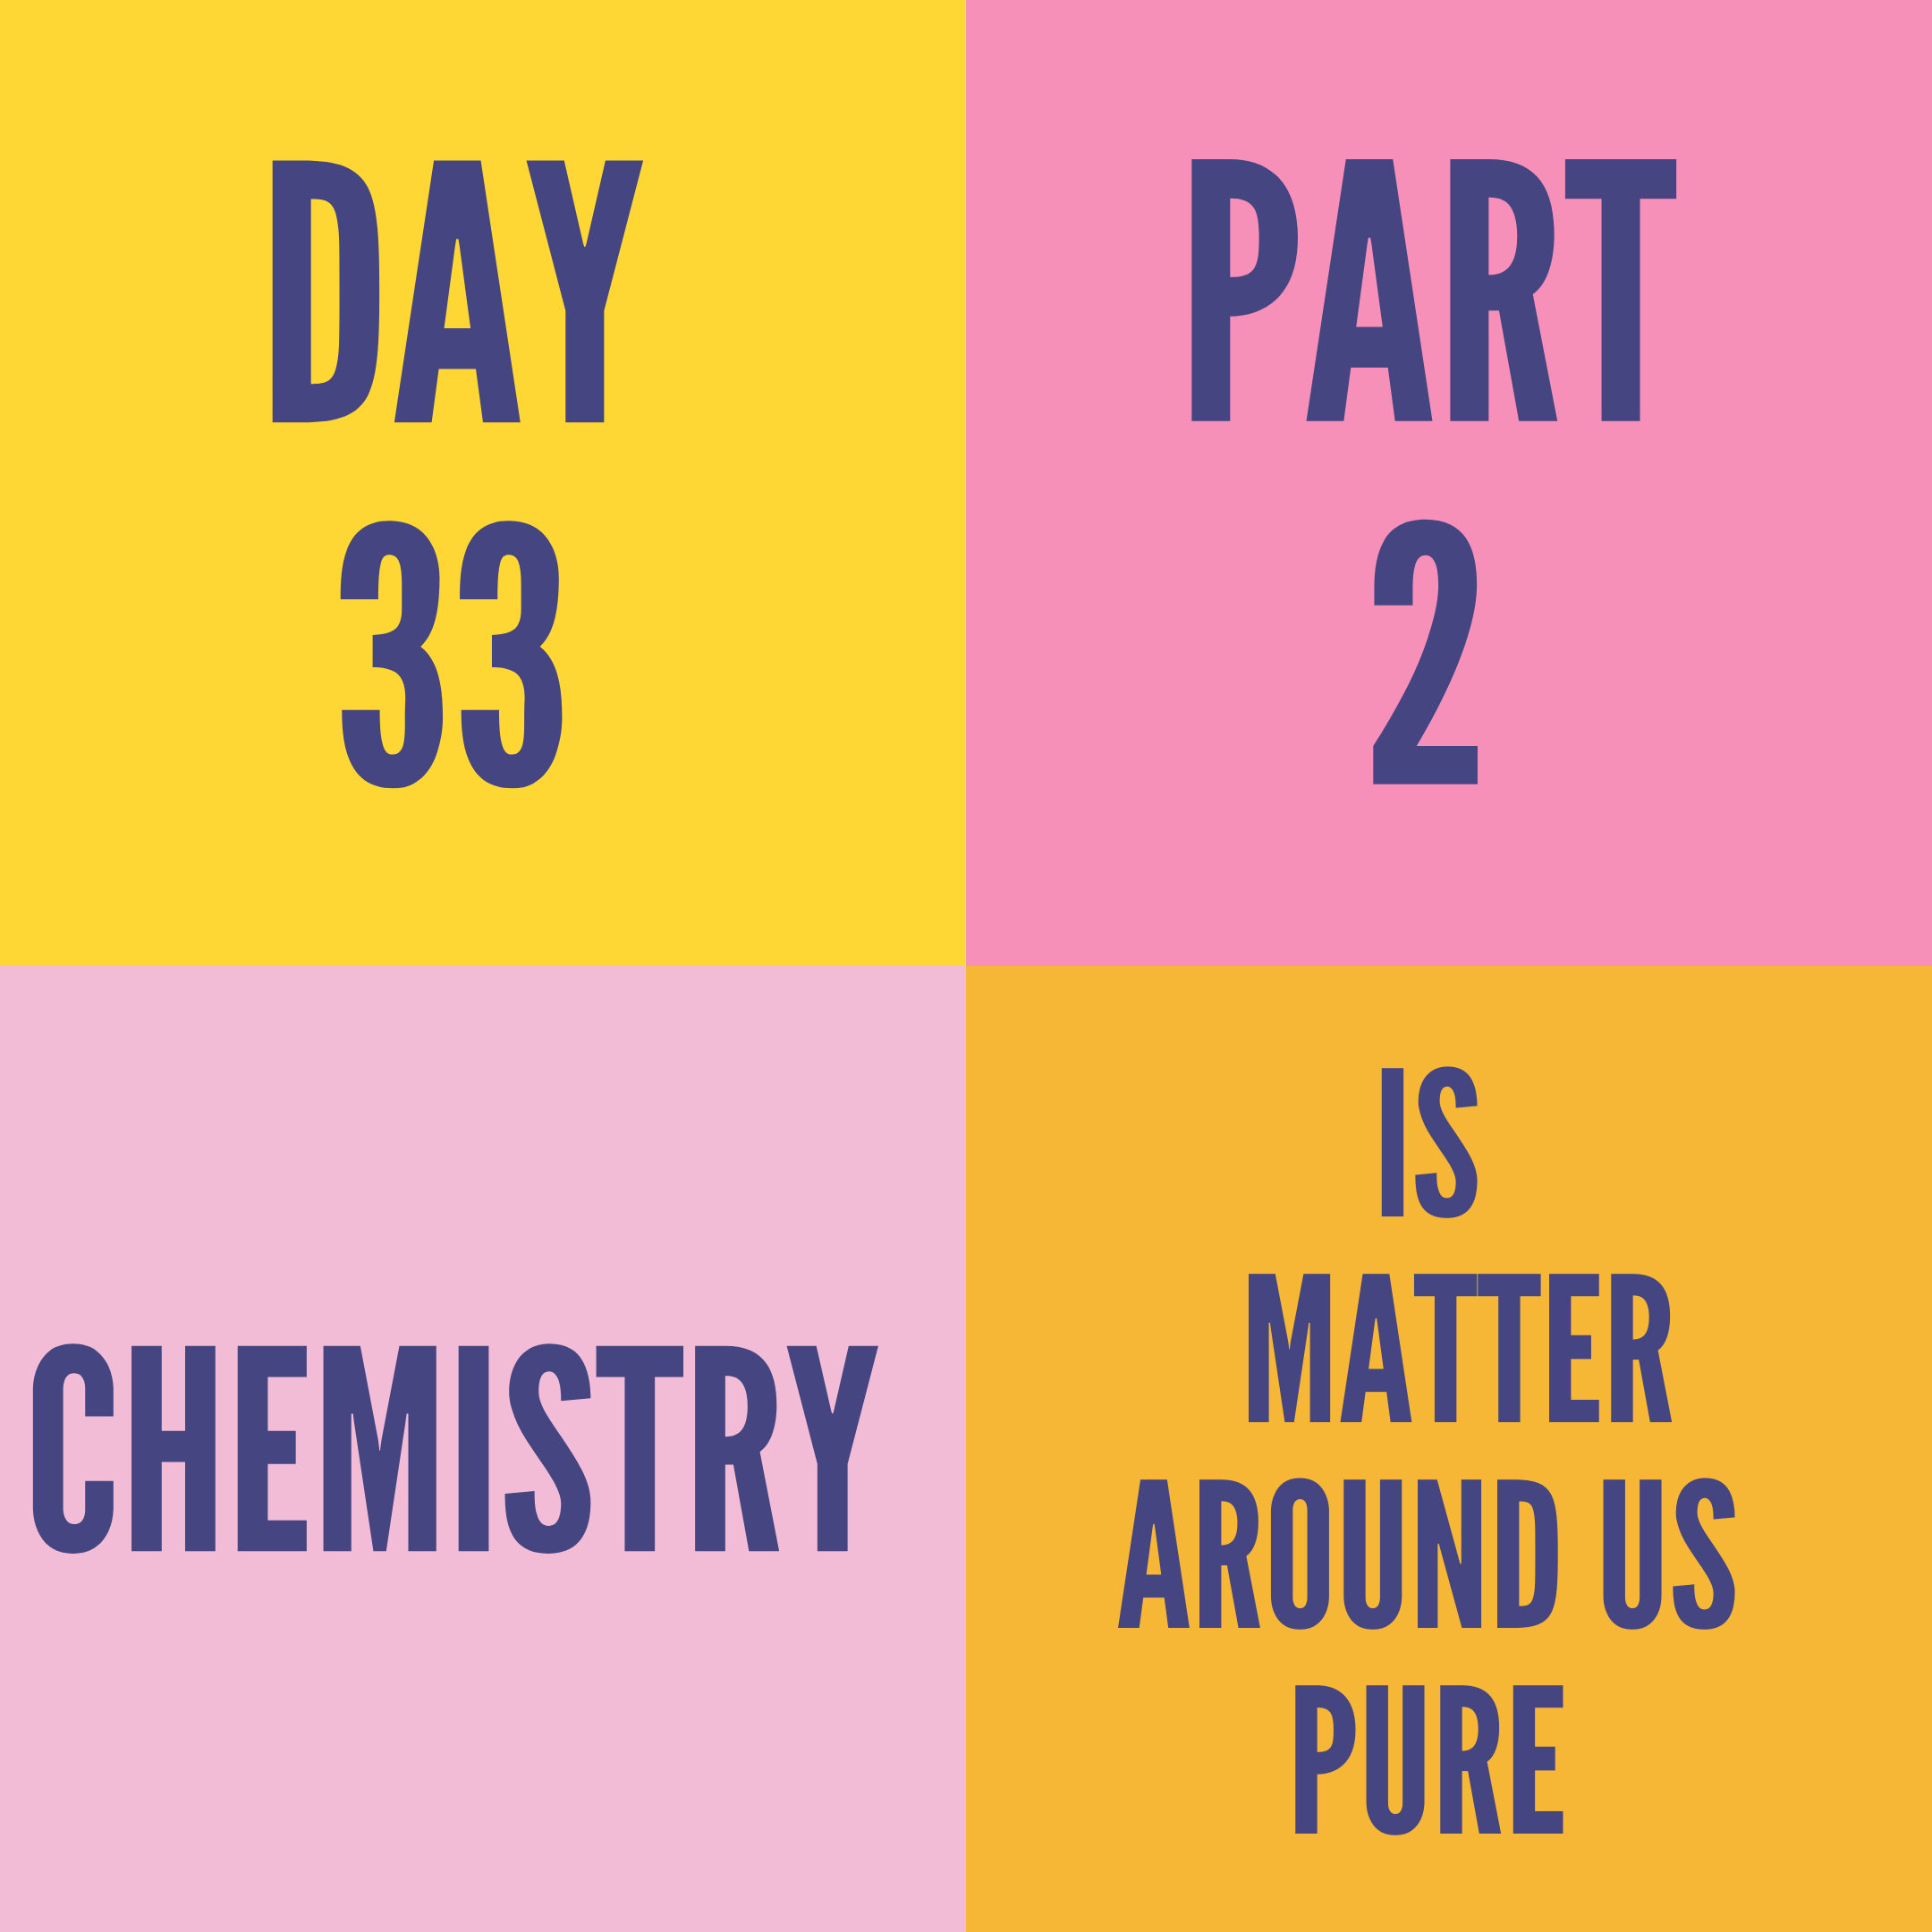 DAY-33 PART-2 IS MATTER AROUND US PURE